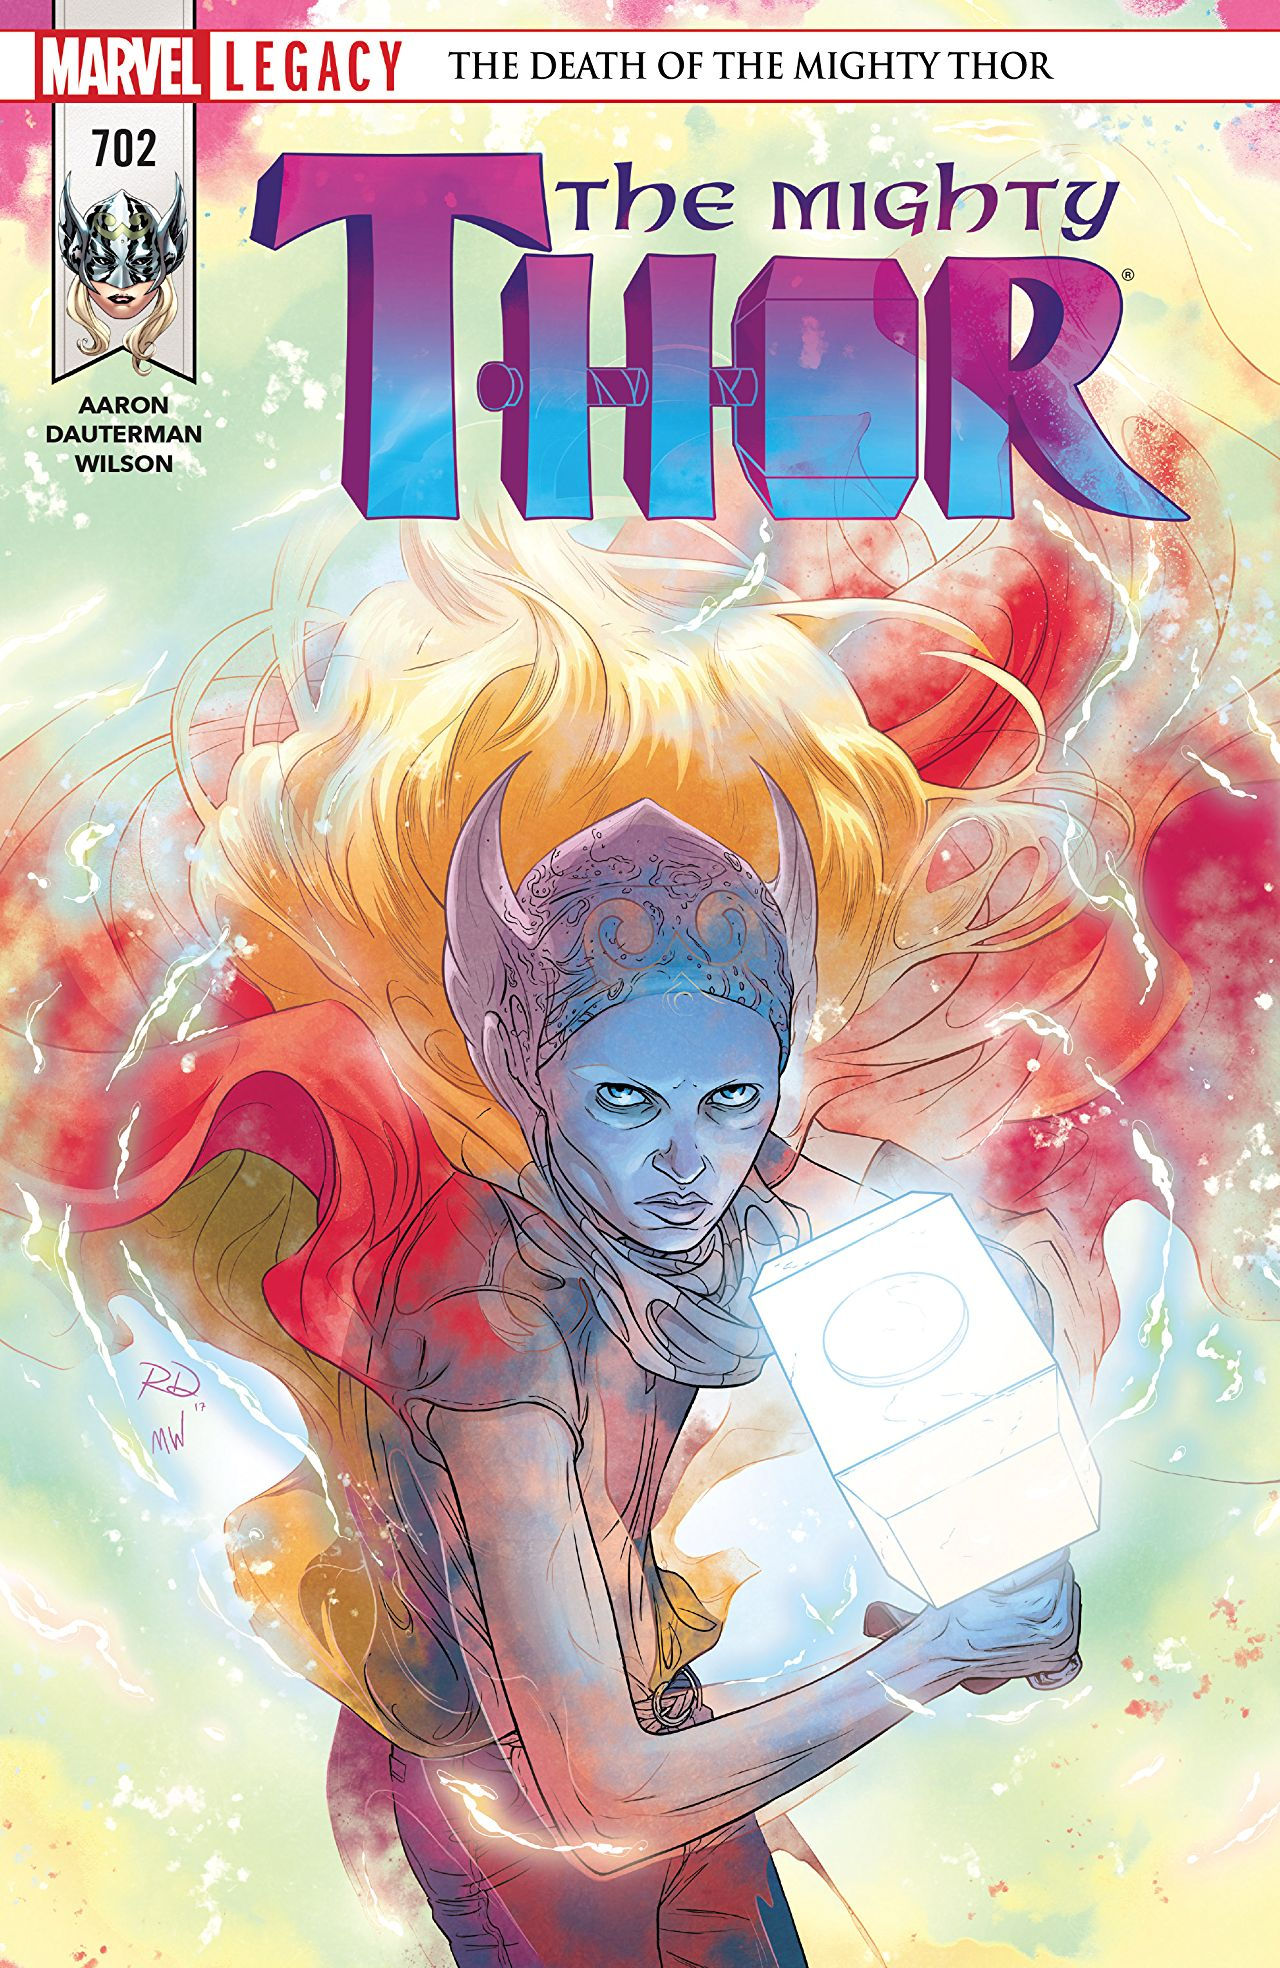 Thor and Odinson commune in a tender issue that sets up big action come #703.